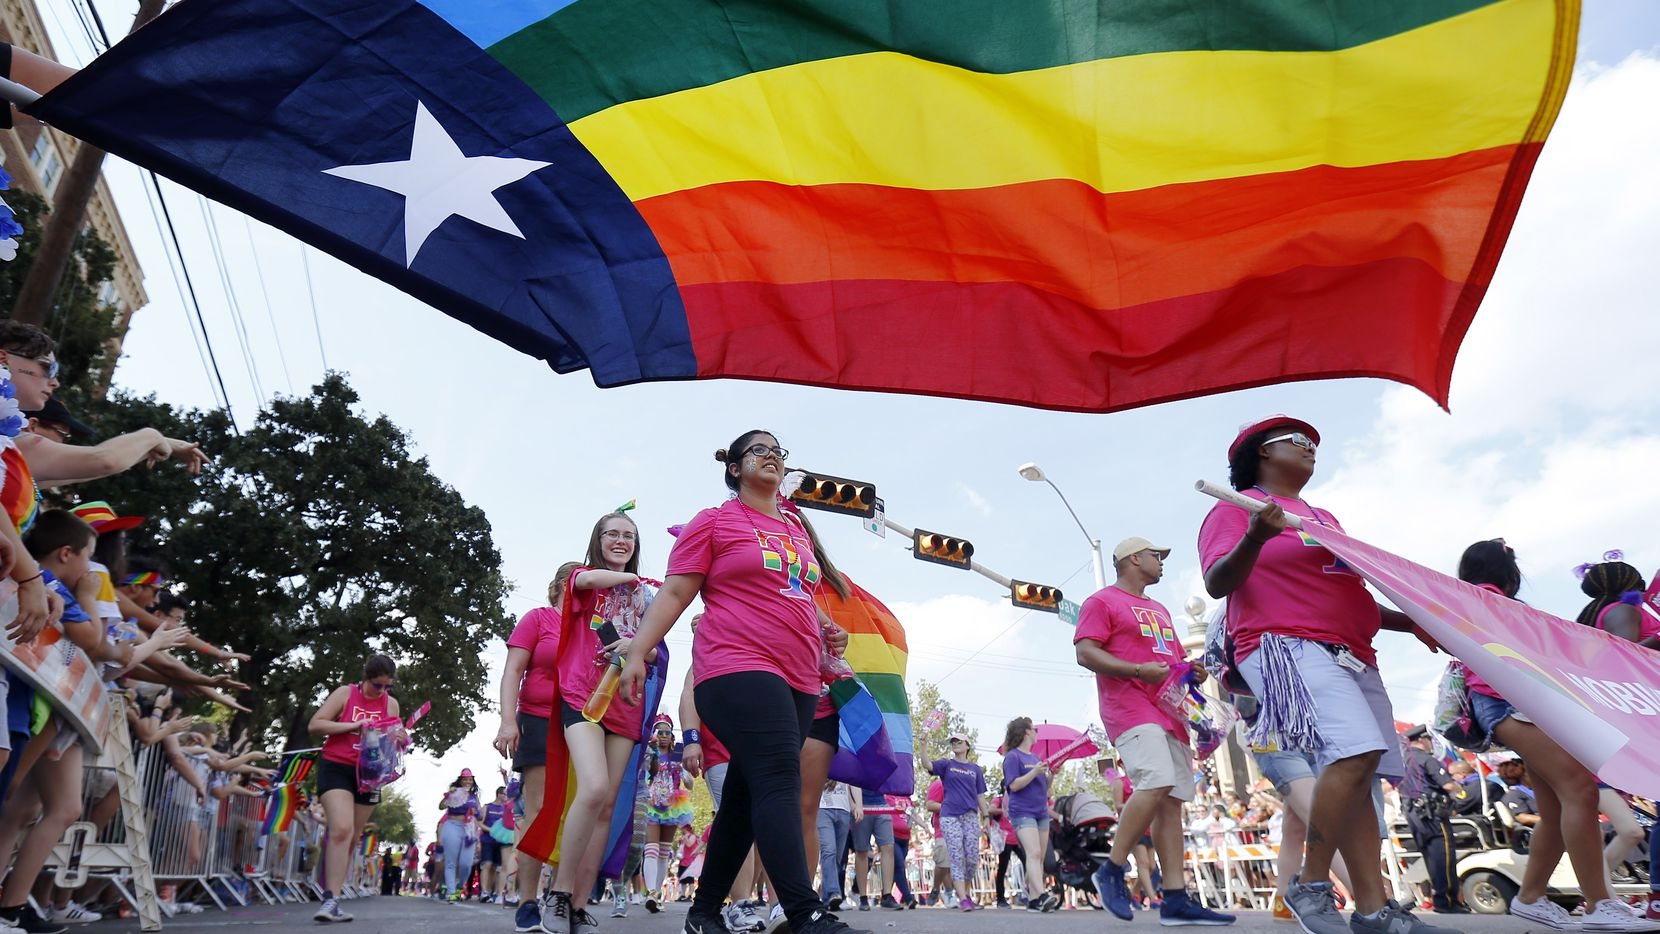 People marching with the Mobilize for Equality group pass by the Texas rainbow flag during the Texas Freedom Parade, Sunday, September 17, 2017.